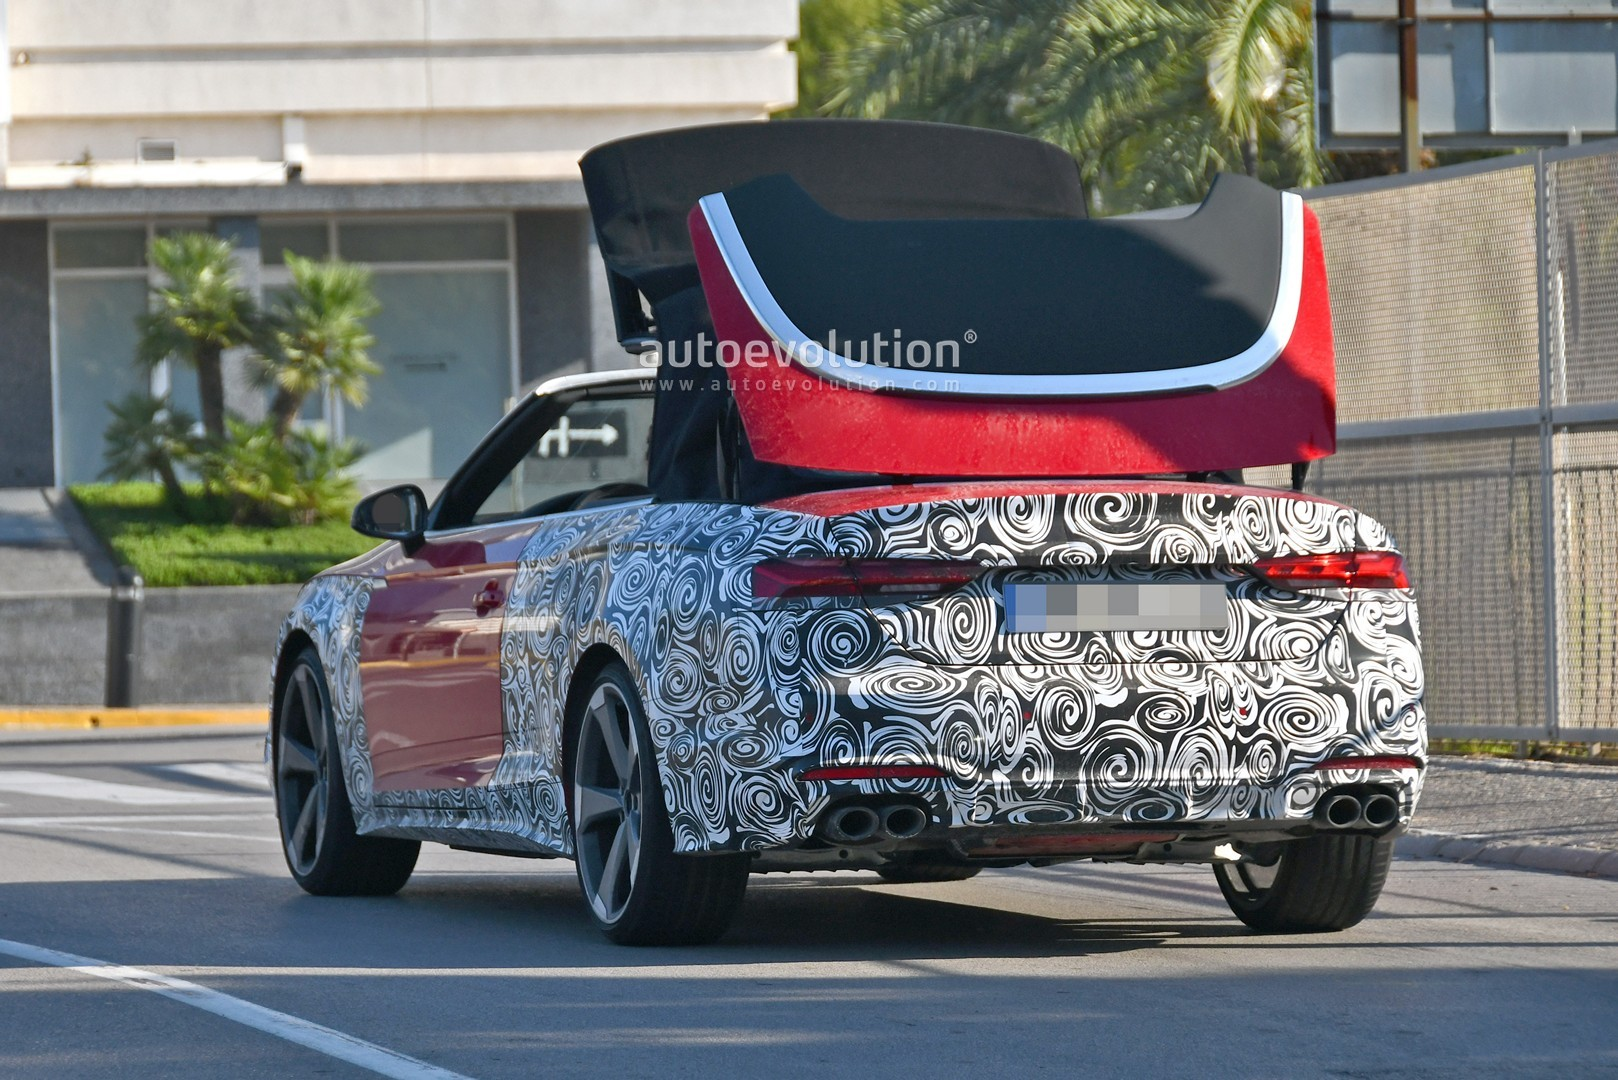 2021 Audi S5 Facelift Spied With Cabrio Top in Action ...